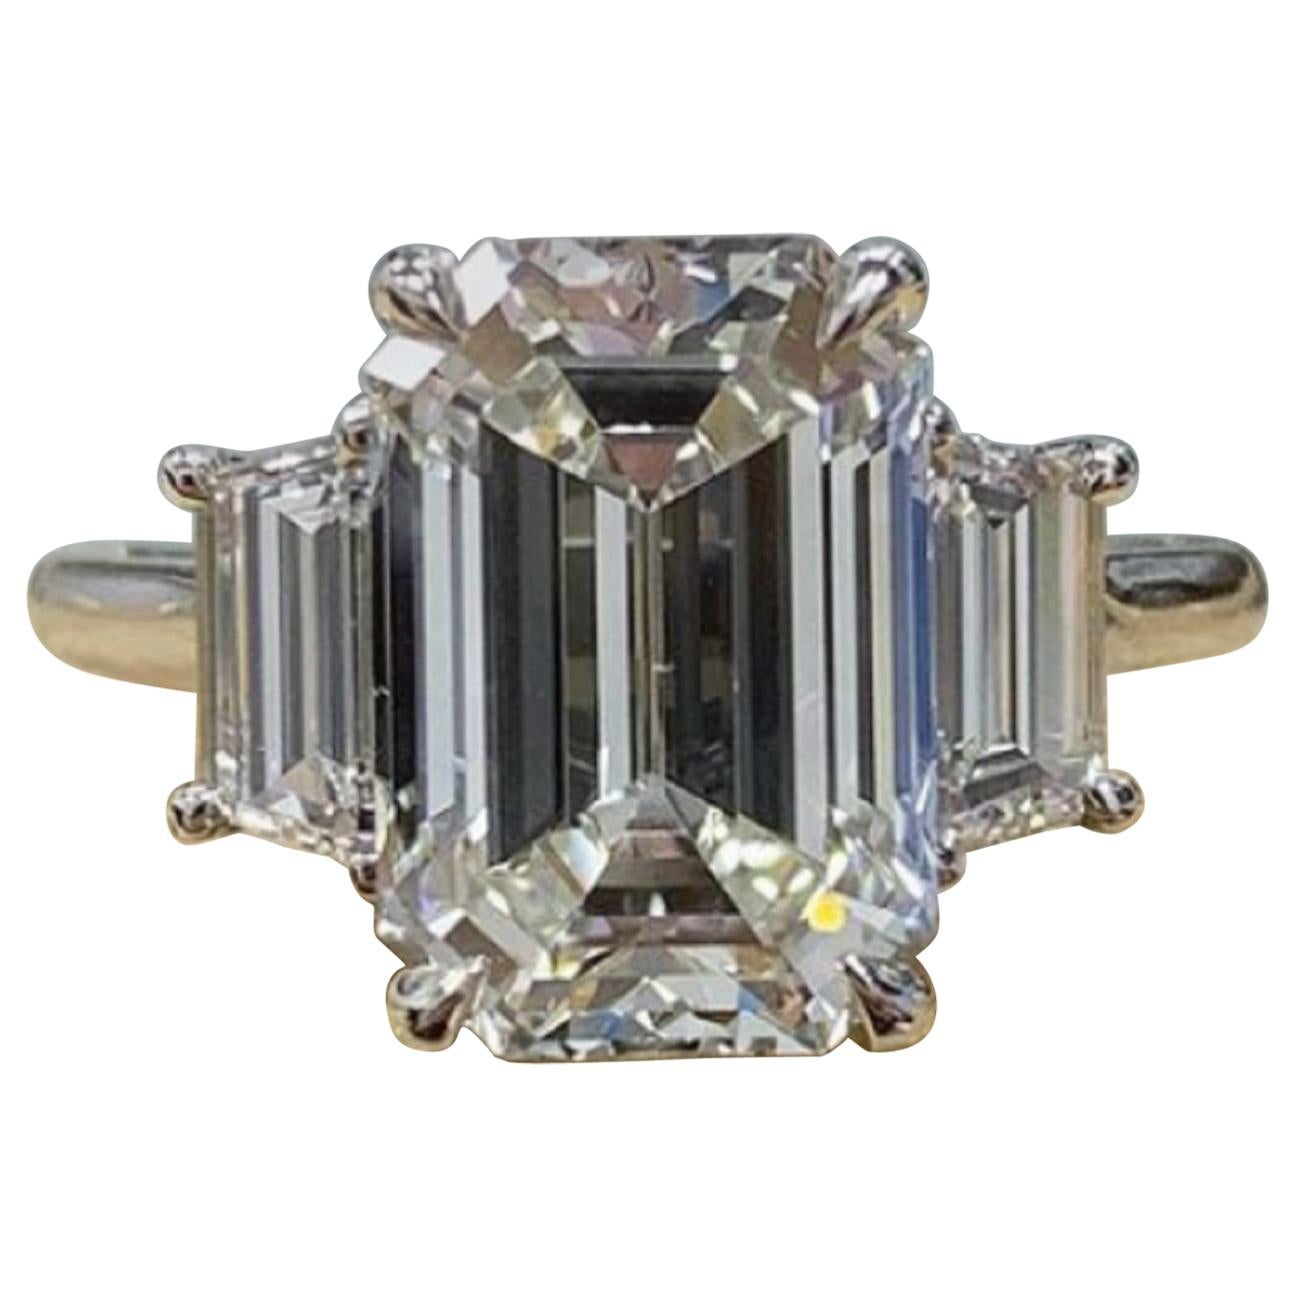 GIA Certified 3 Carat Internally Flawless D Color Emerald Cut Diamond Ring